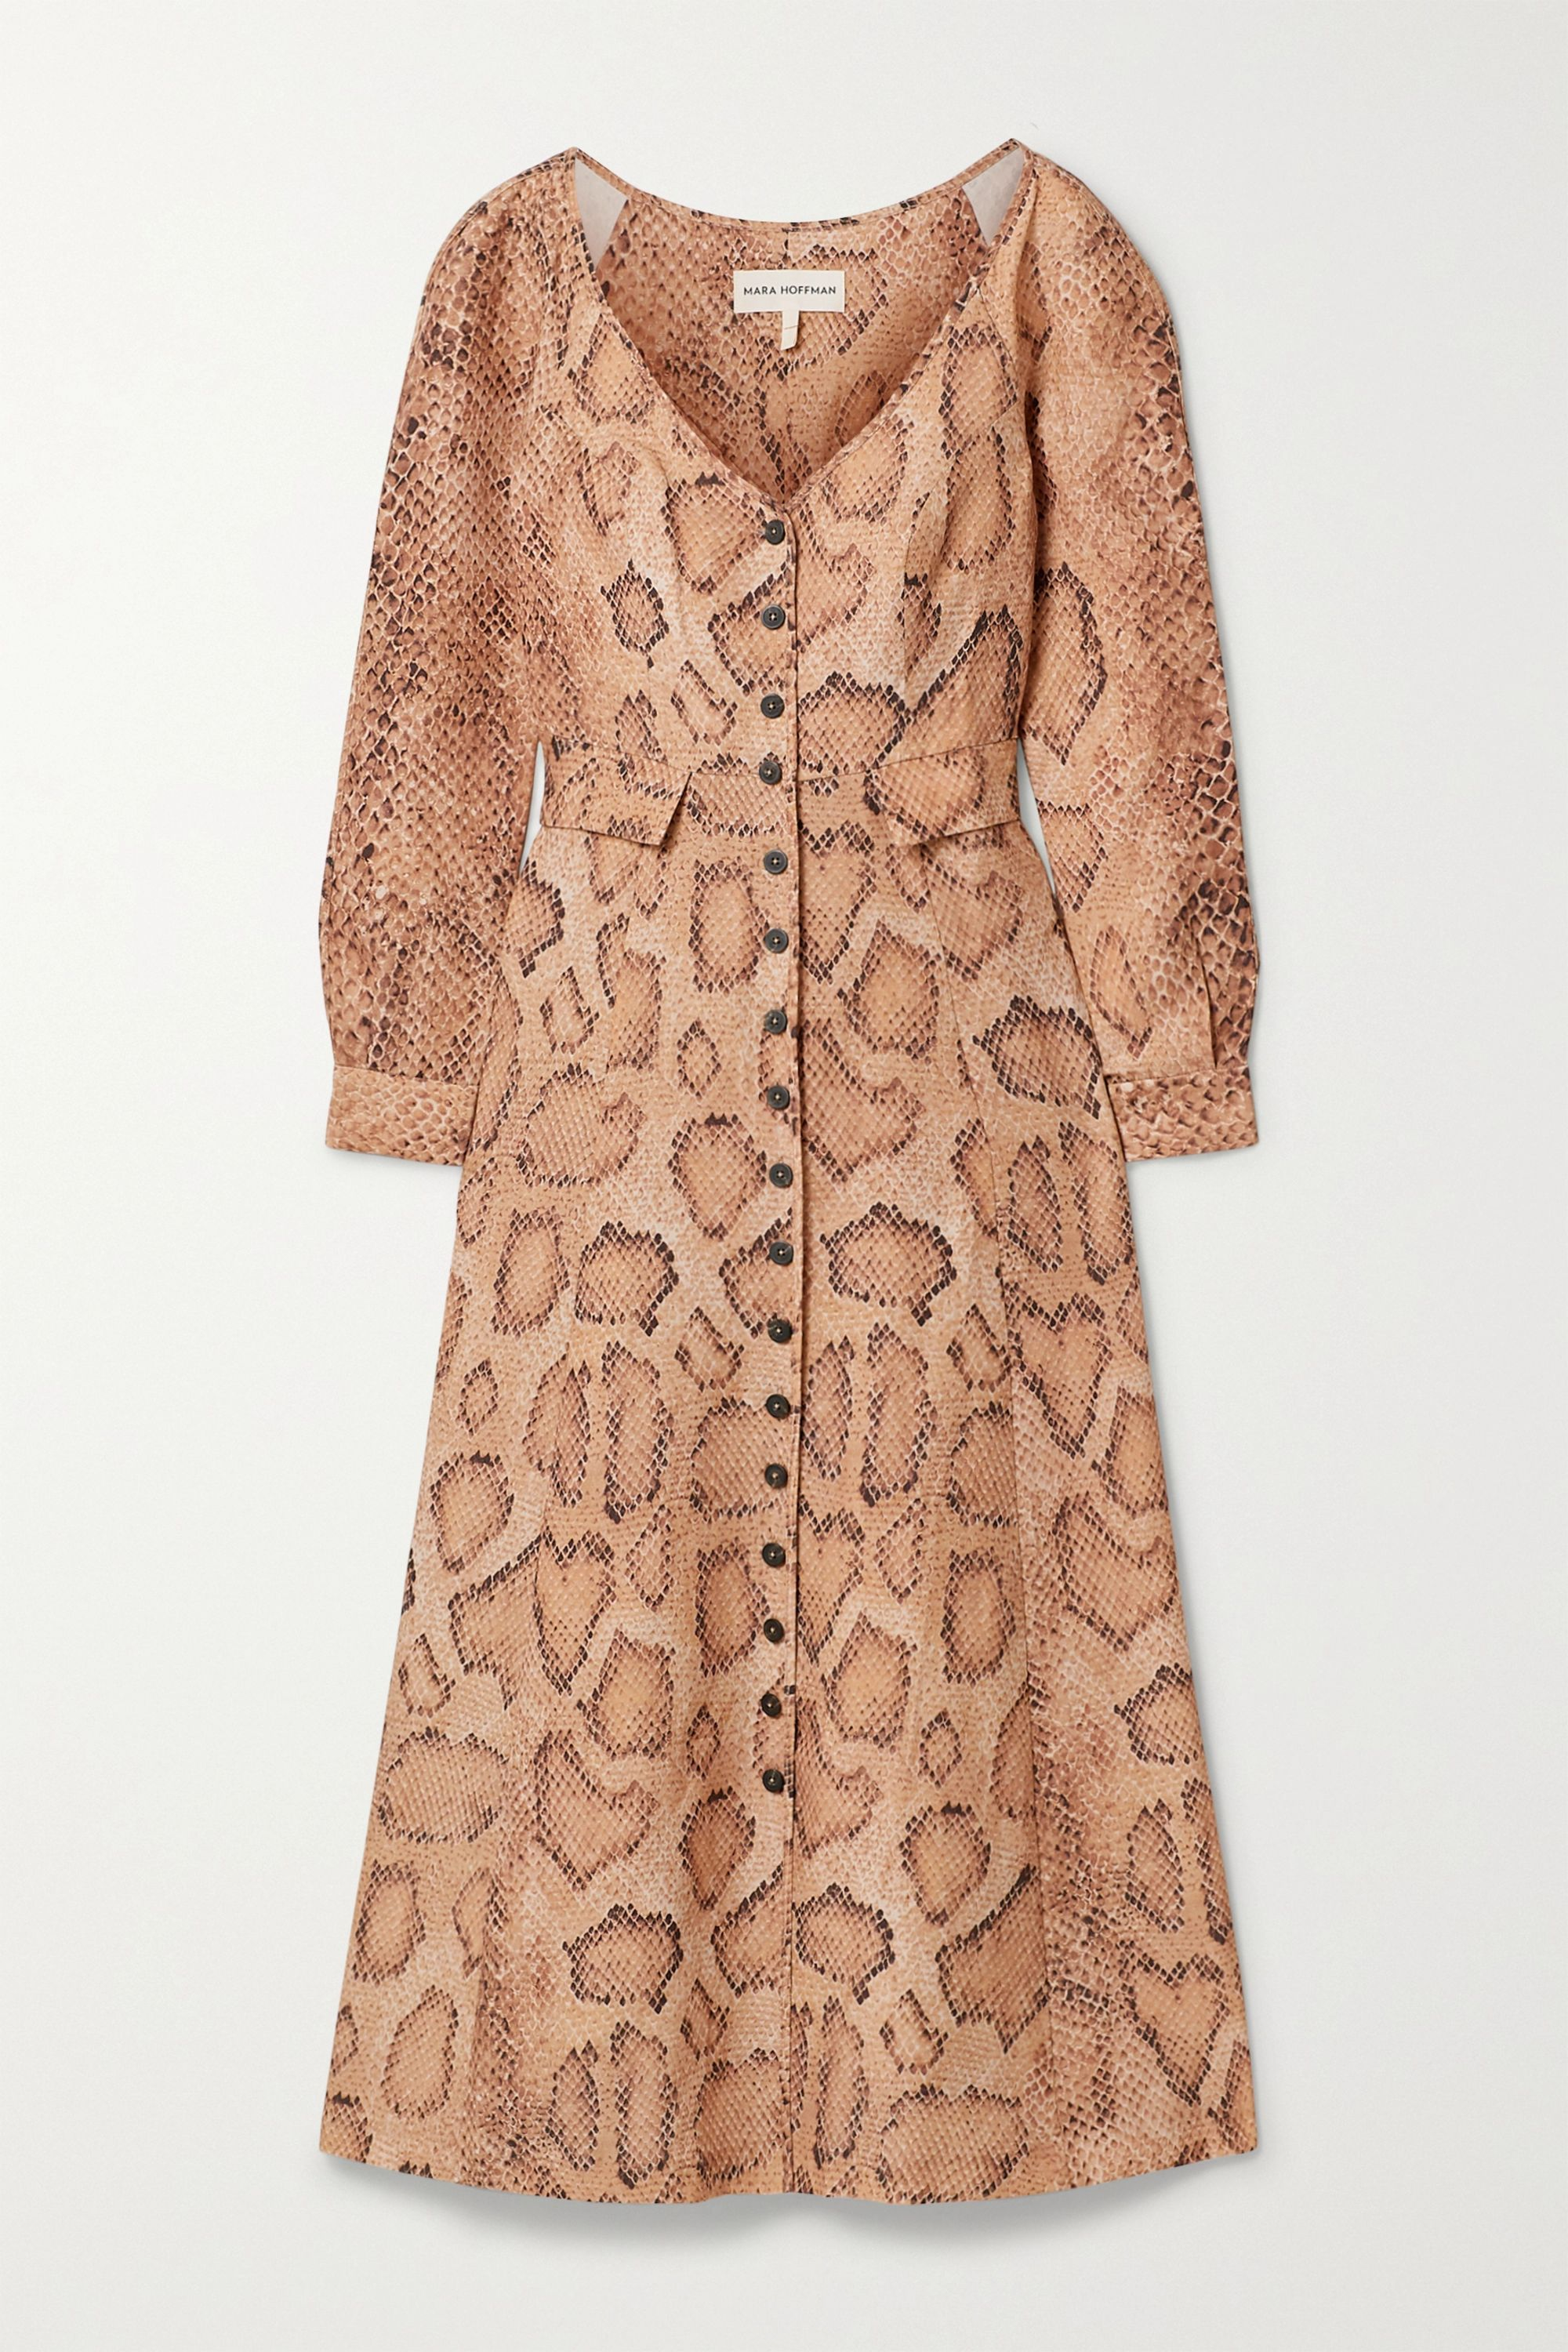 Mara Hoffman Womens Floral Jacquard Fitted Midi Cover Up Dress